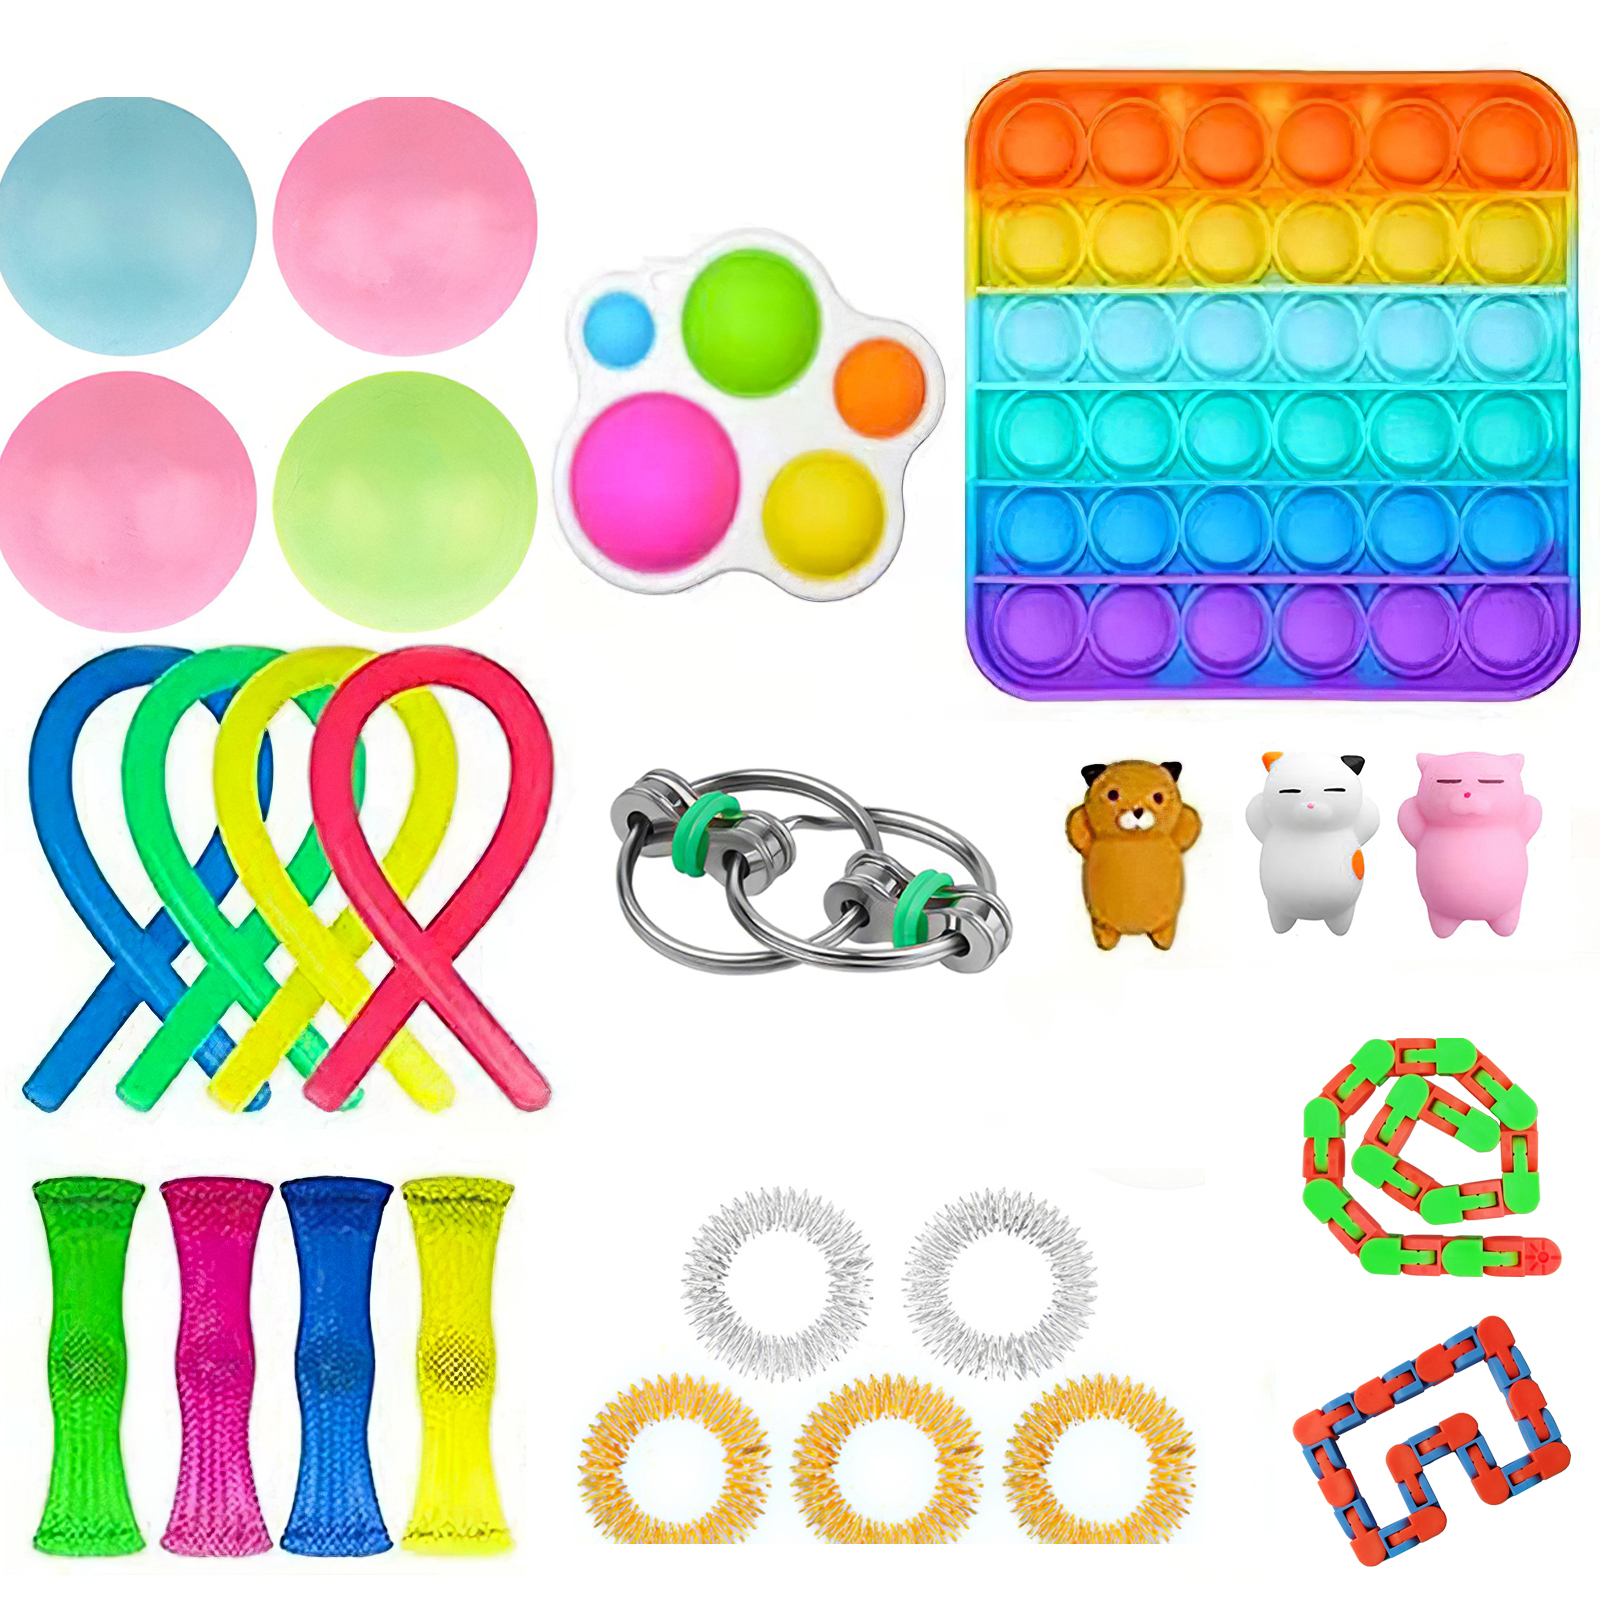 20/25PCS Package Fidget Sensory Toy Set Noodle Rope Anti-Stress Set Vent Decompression Toy AutismTong Relieve Anxiety Kids Adult